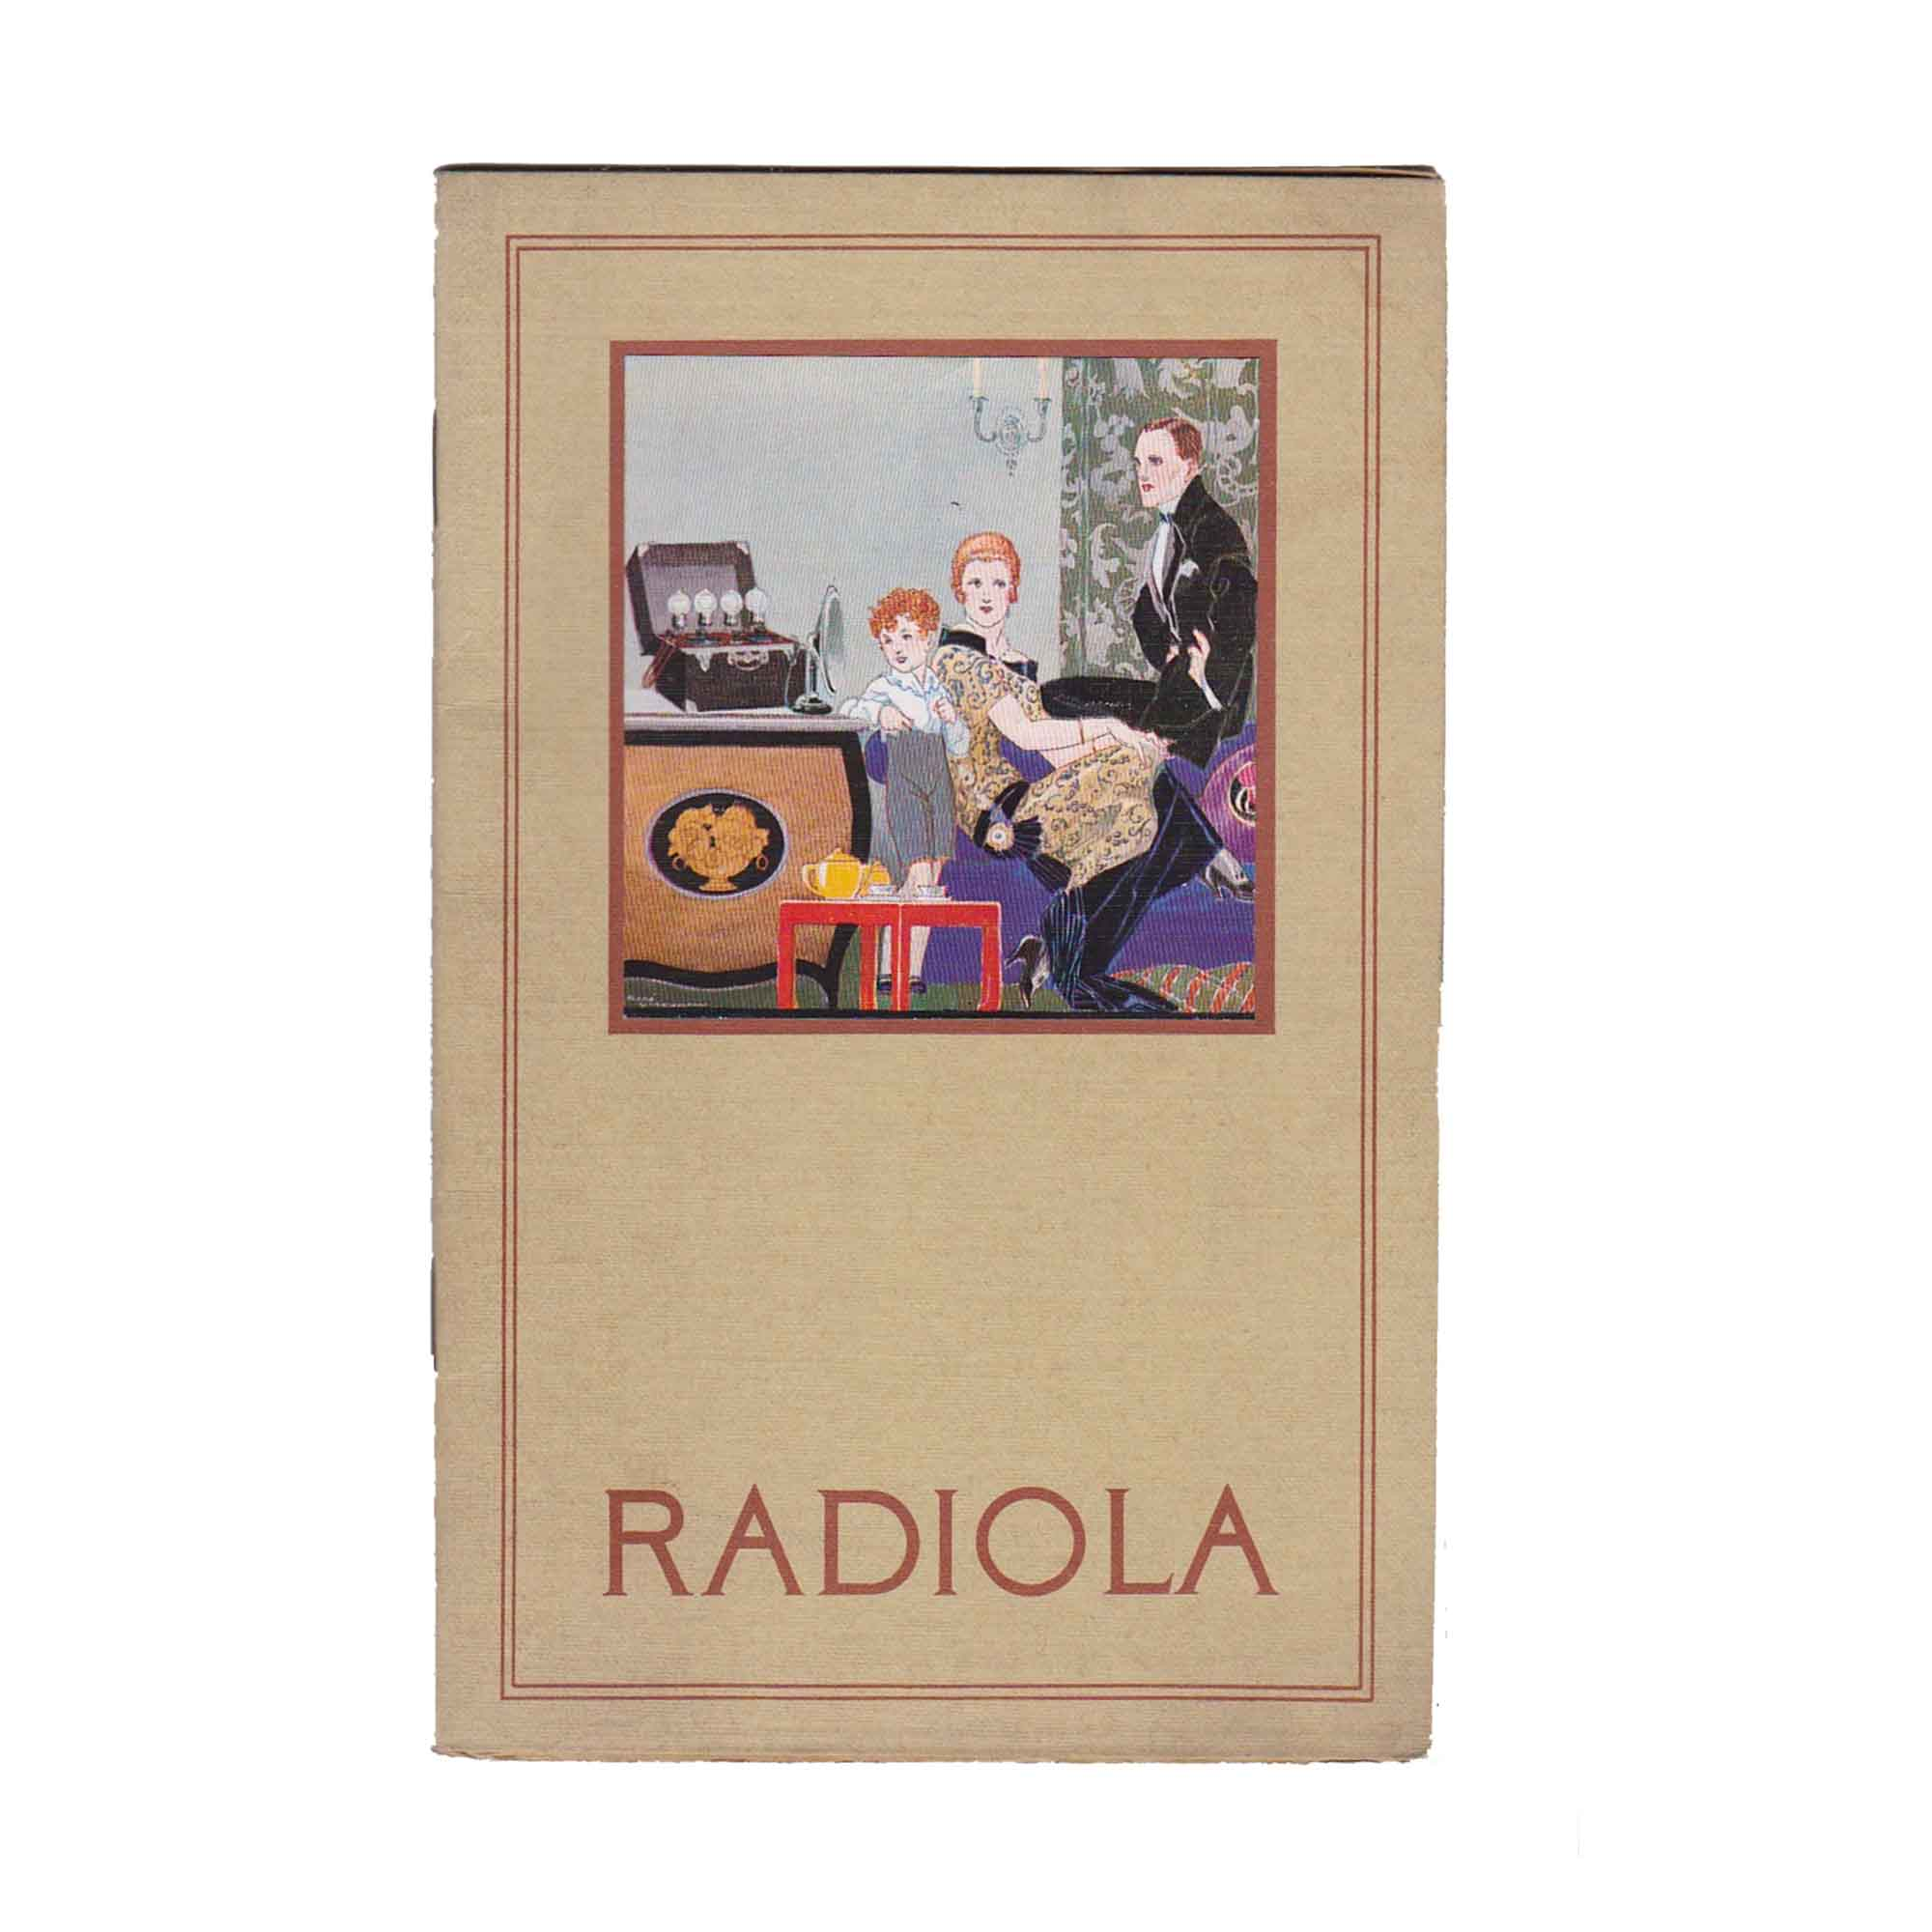 5446-Catalogue-Radiola-Vincent-1923-Cover-frei-N.jpg